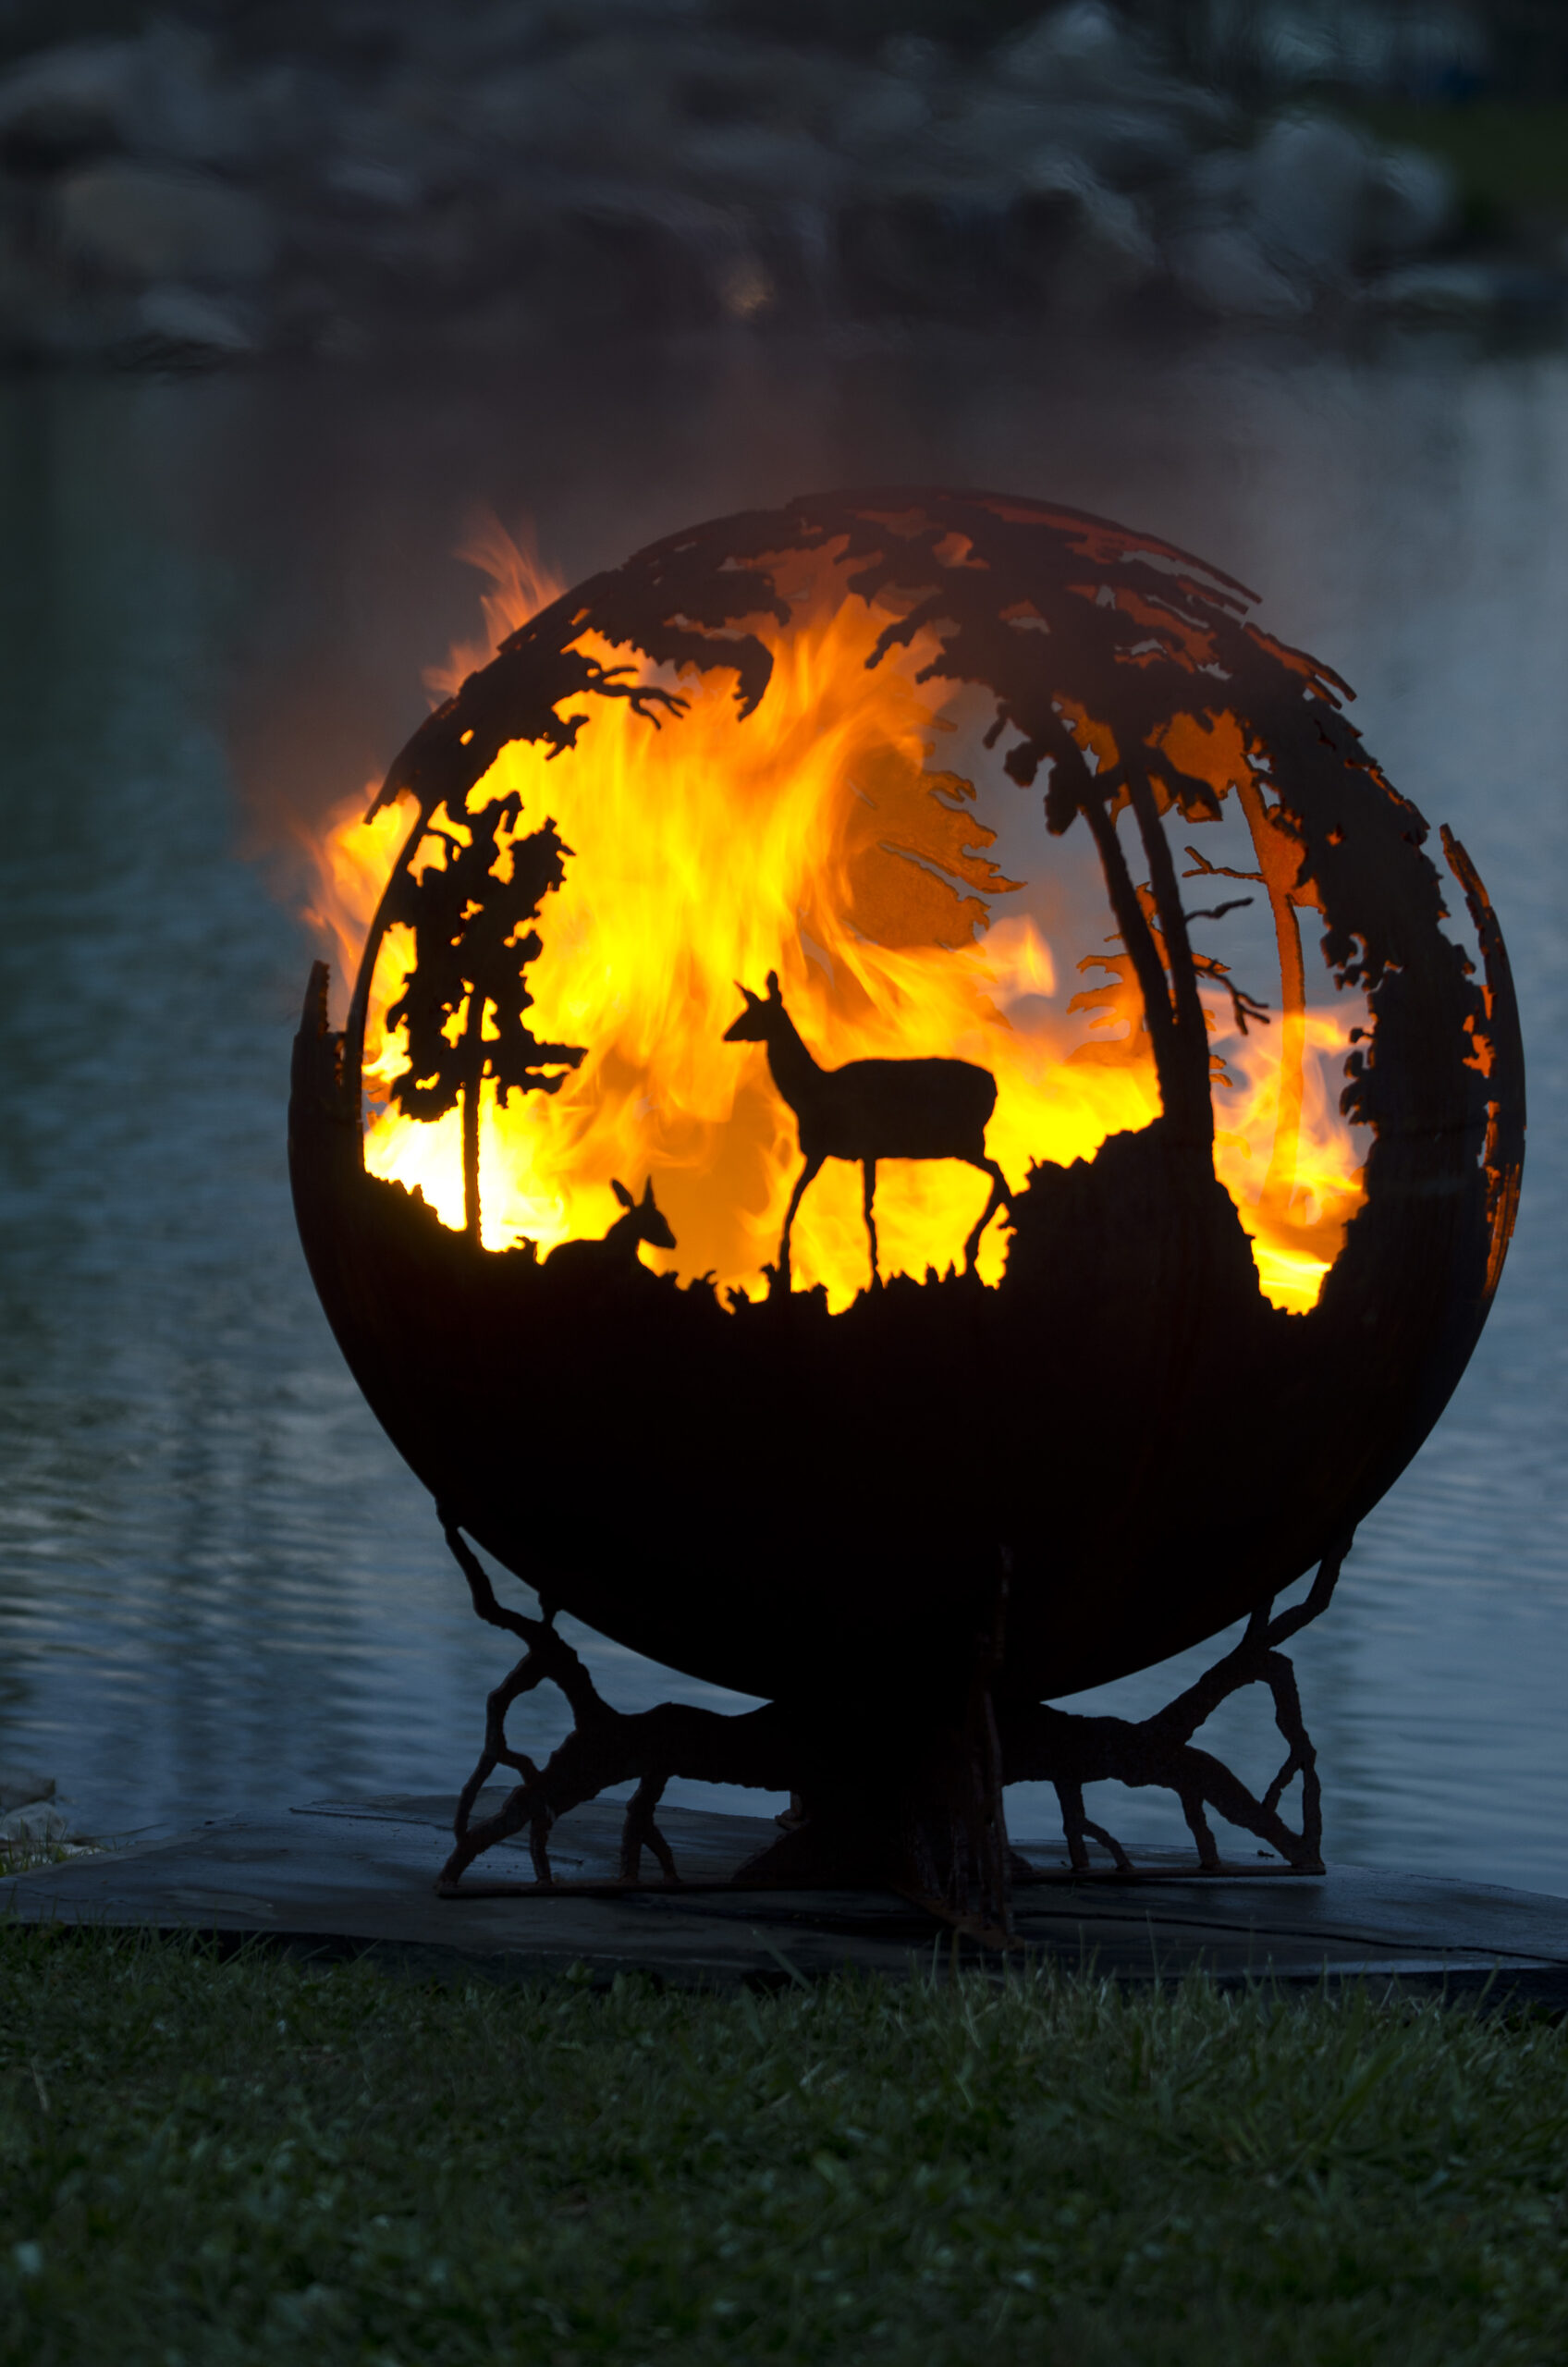 The Fire Pit After Dark